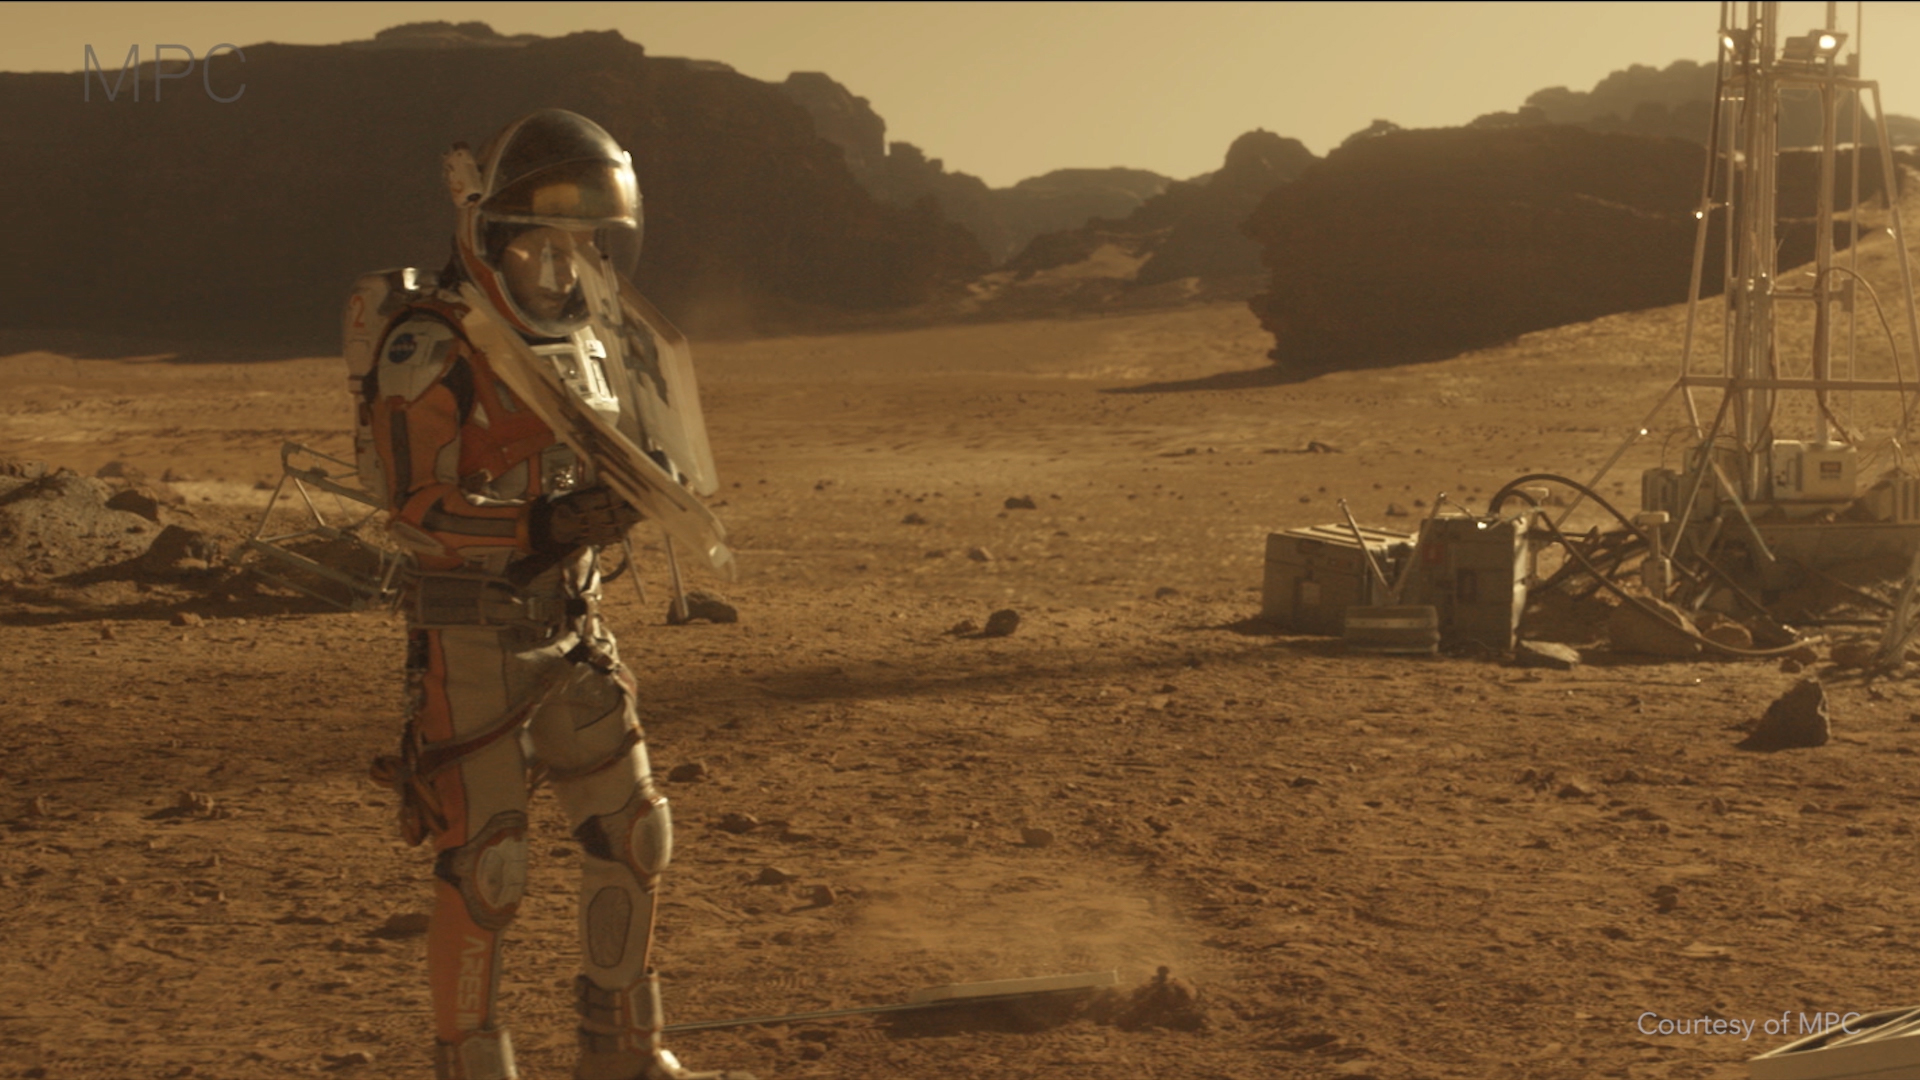 Nuke composits other worlds in this still from The Martian by Ridley Scott